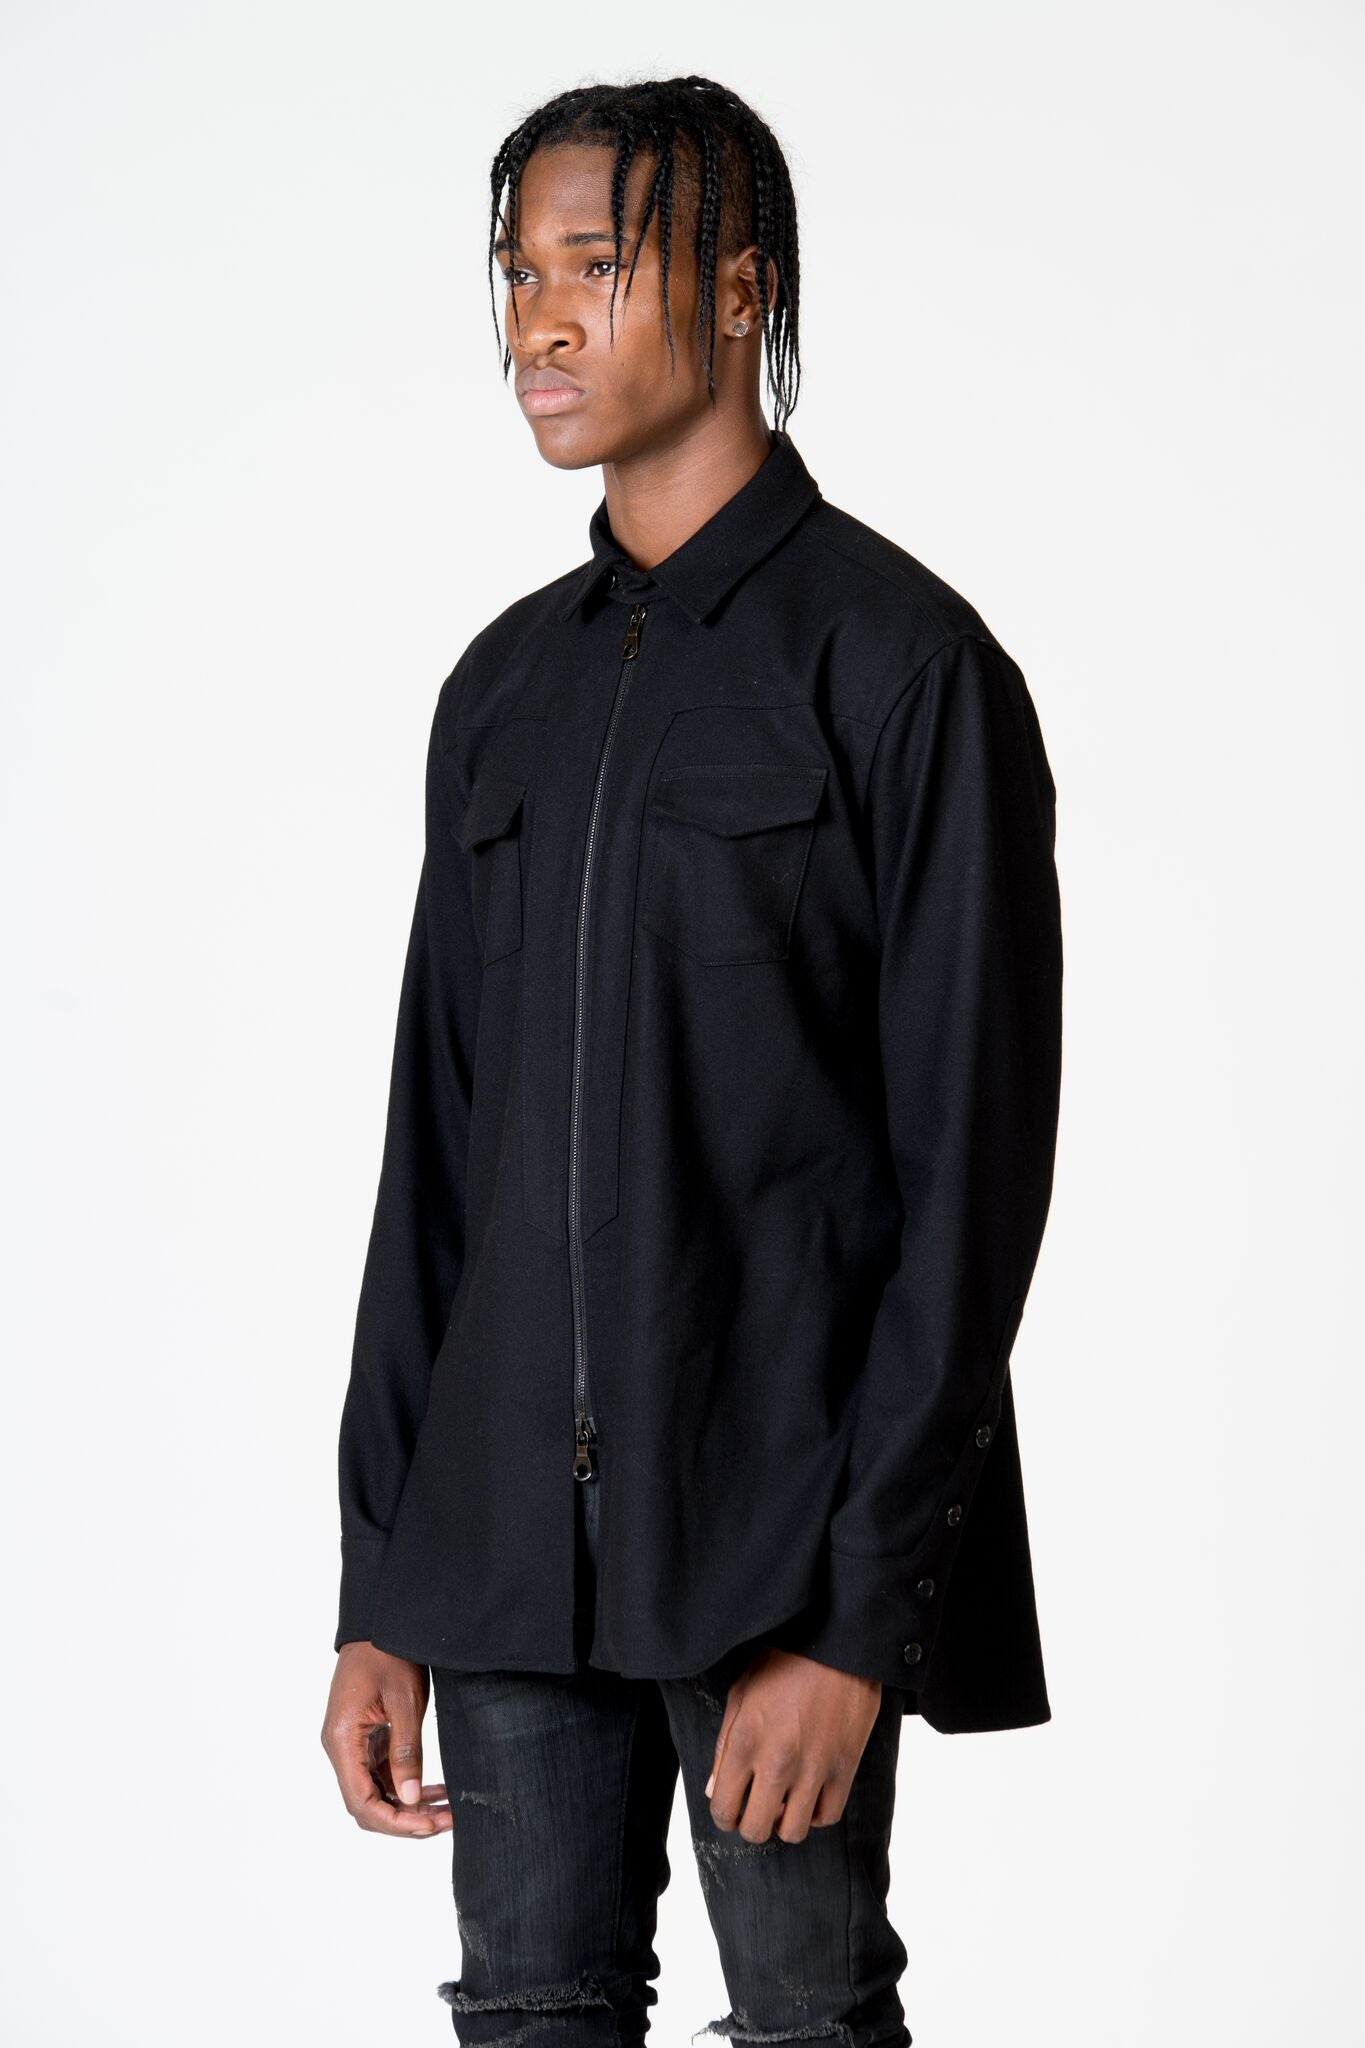 OLIVER YOUNG SOLID BLACK RODEO SHIRT